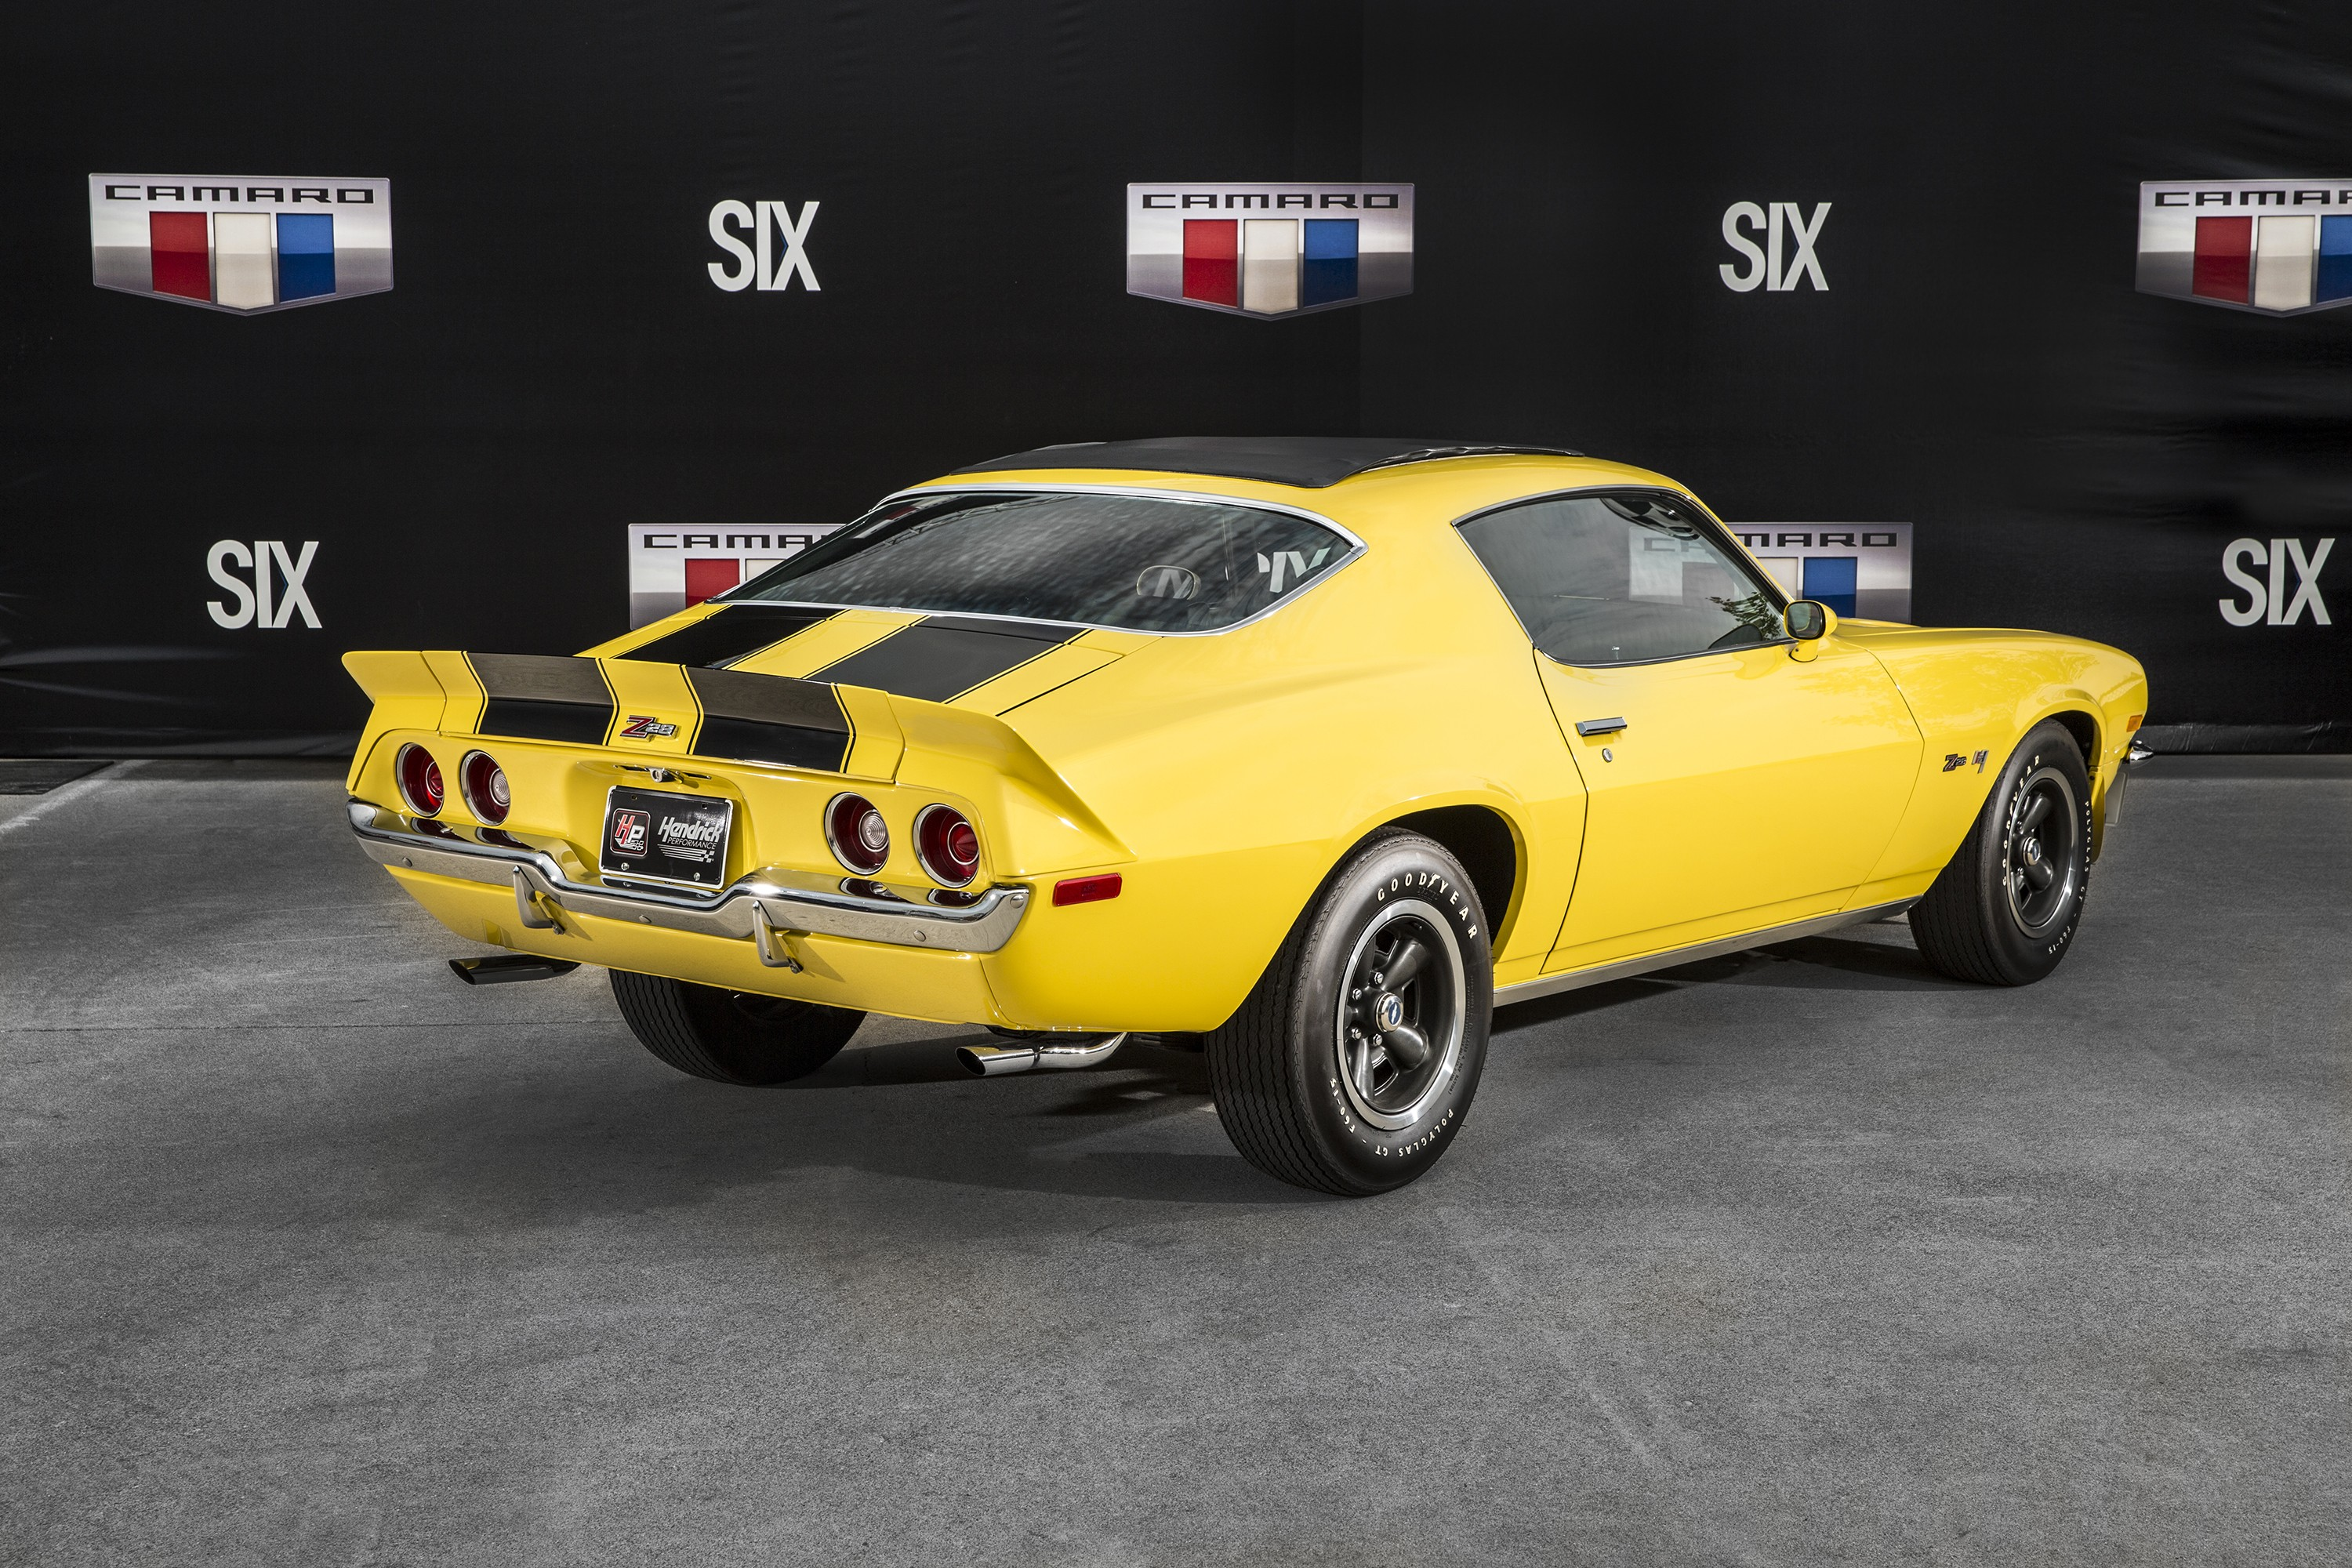 camaro chevrolet 1970 1966 age chevy visual hurst camaros z28 changed present coming guide 1981 ss autoevolution convertible special museum